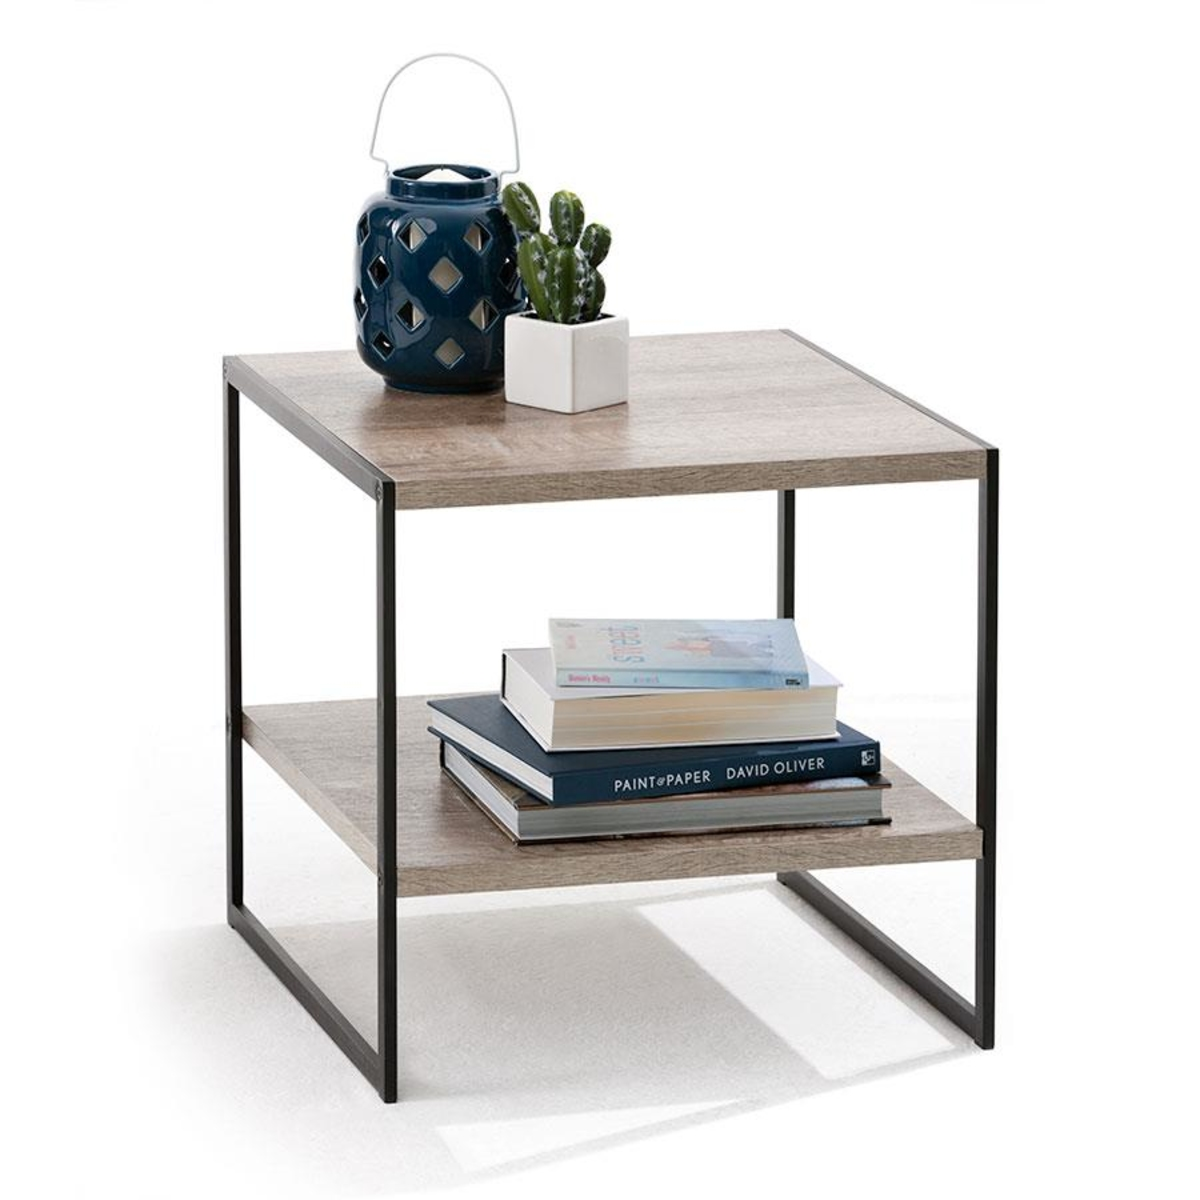 furniture & rug: kmart dining room sets | kmart bookshelves